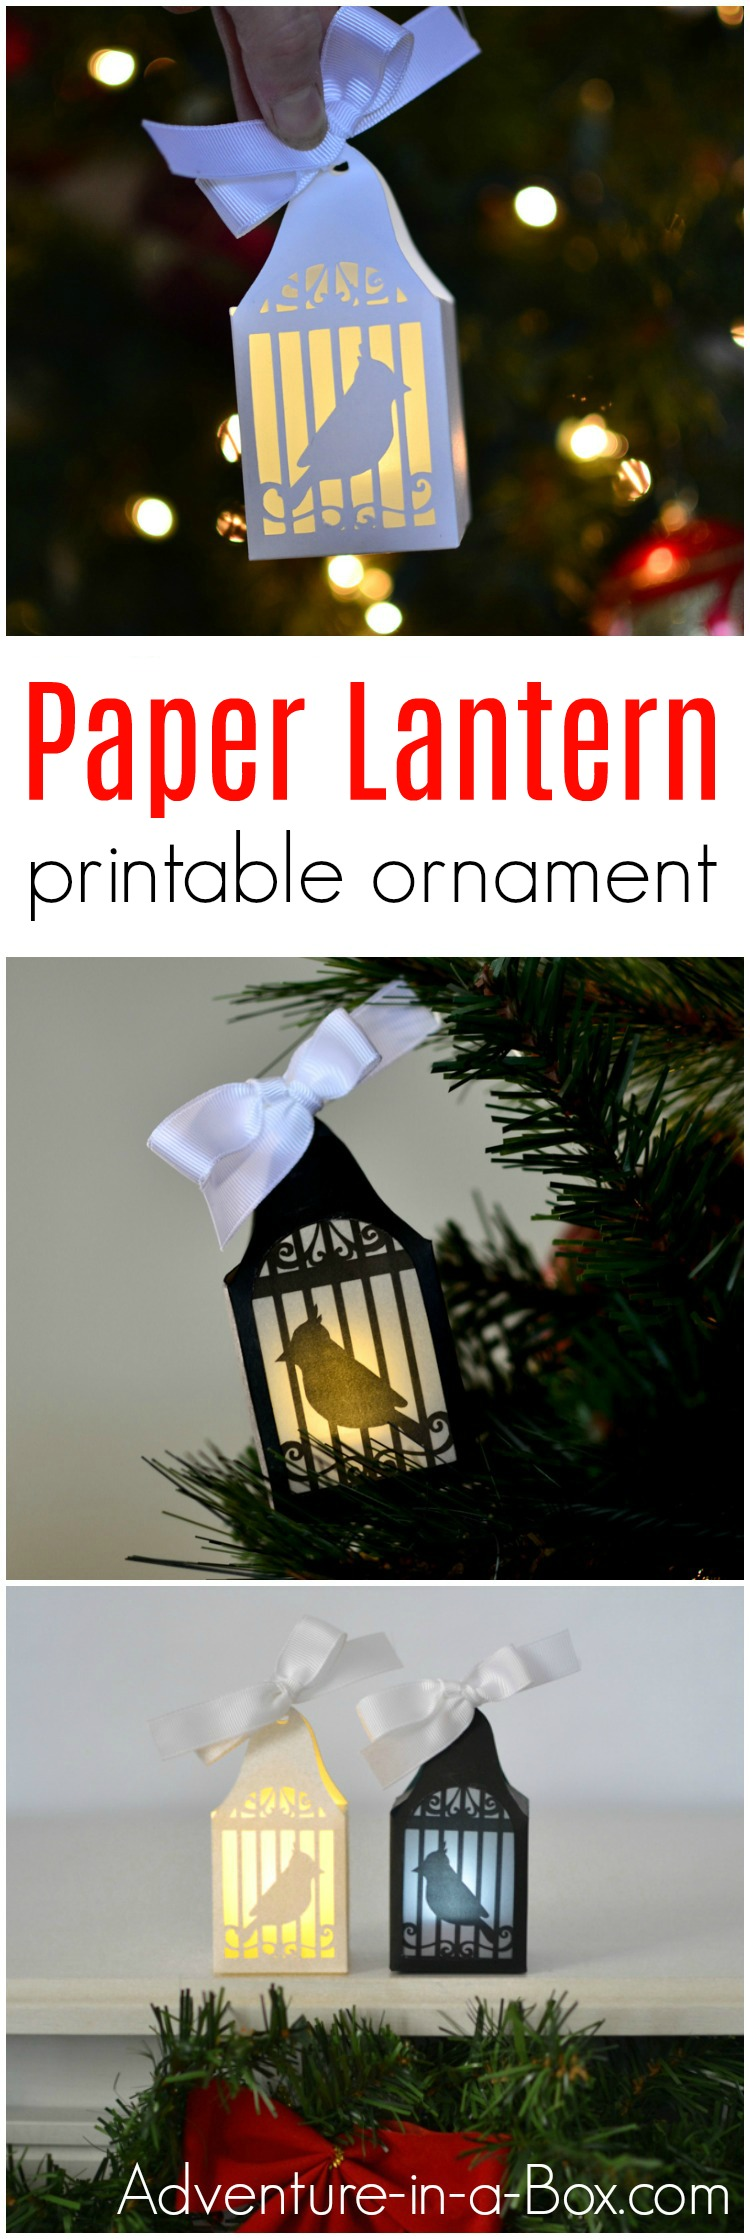 Make a paper lantern ornament from a printable design to put on a Christmas tree or display as a lantern!